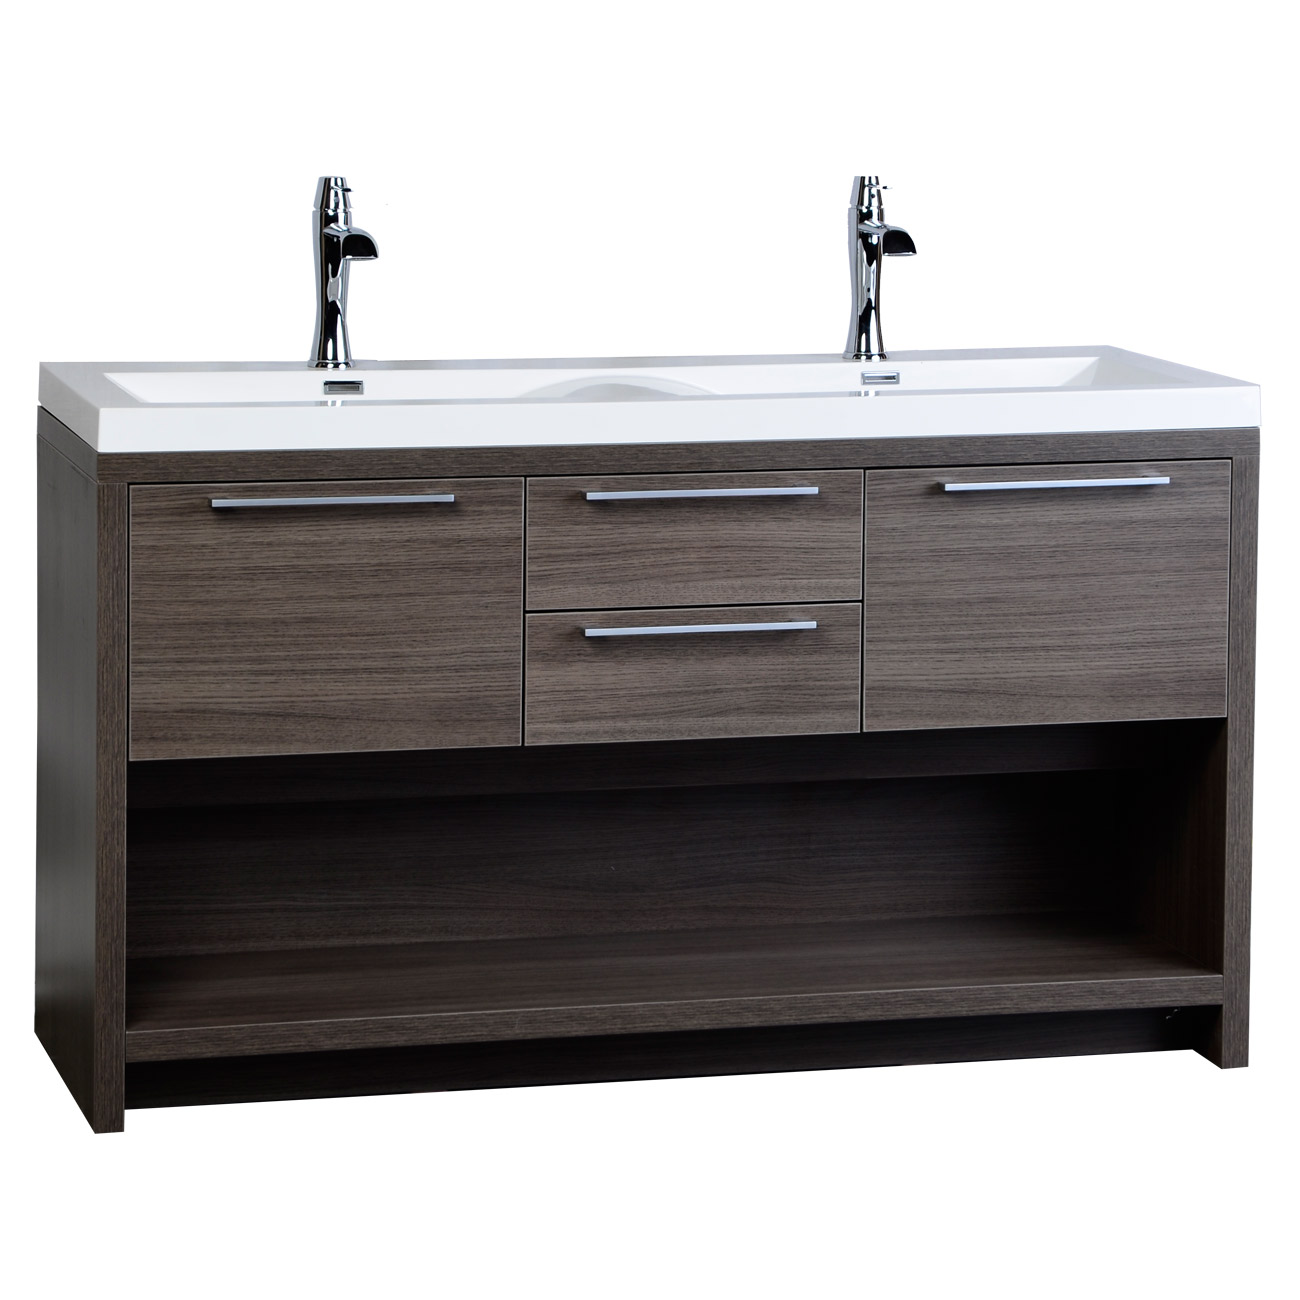 57 contemporary double vanity set with wavy sink grey oak tn f1440 go - Modern bathroom vanity double sink ...